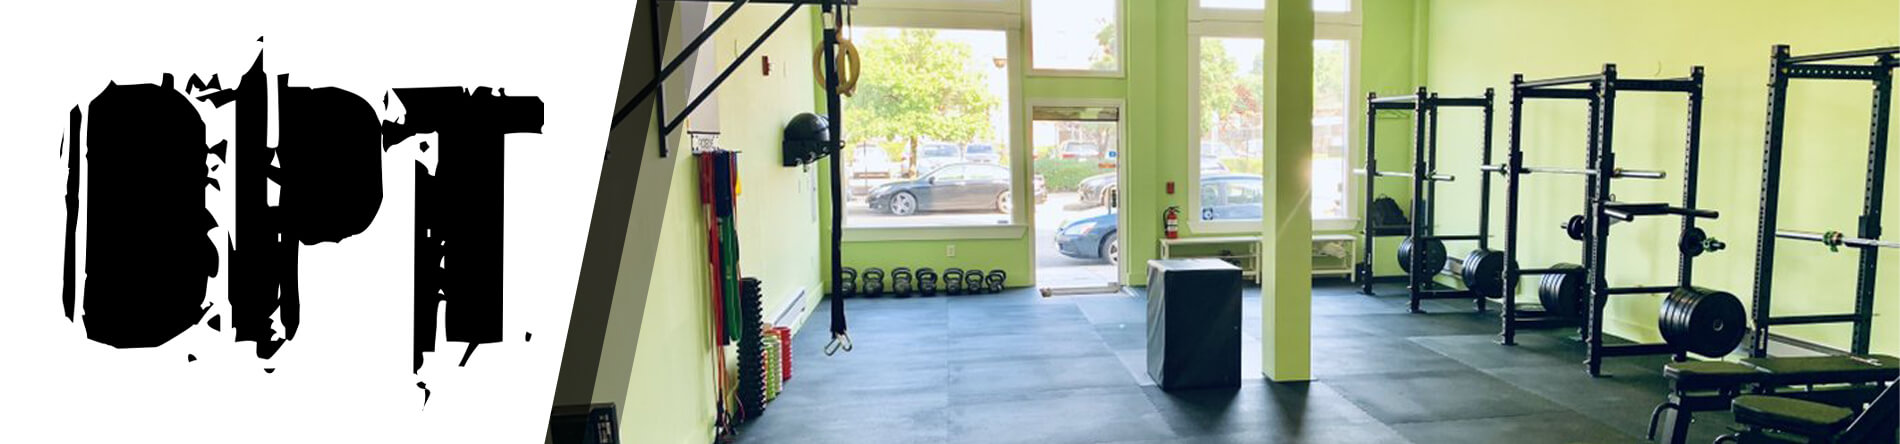 Other Path Training is a Personal Trainer in Jersey City, NJ